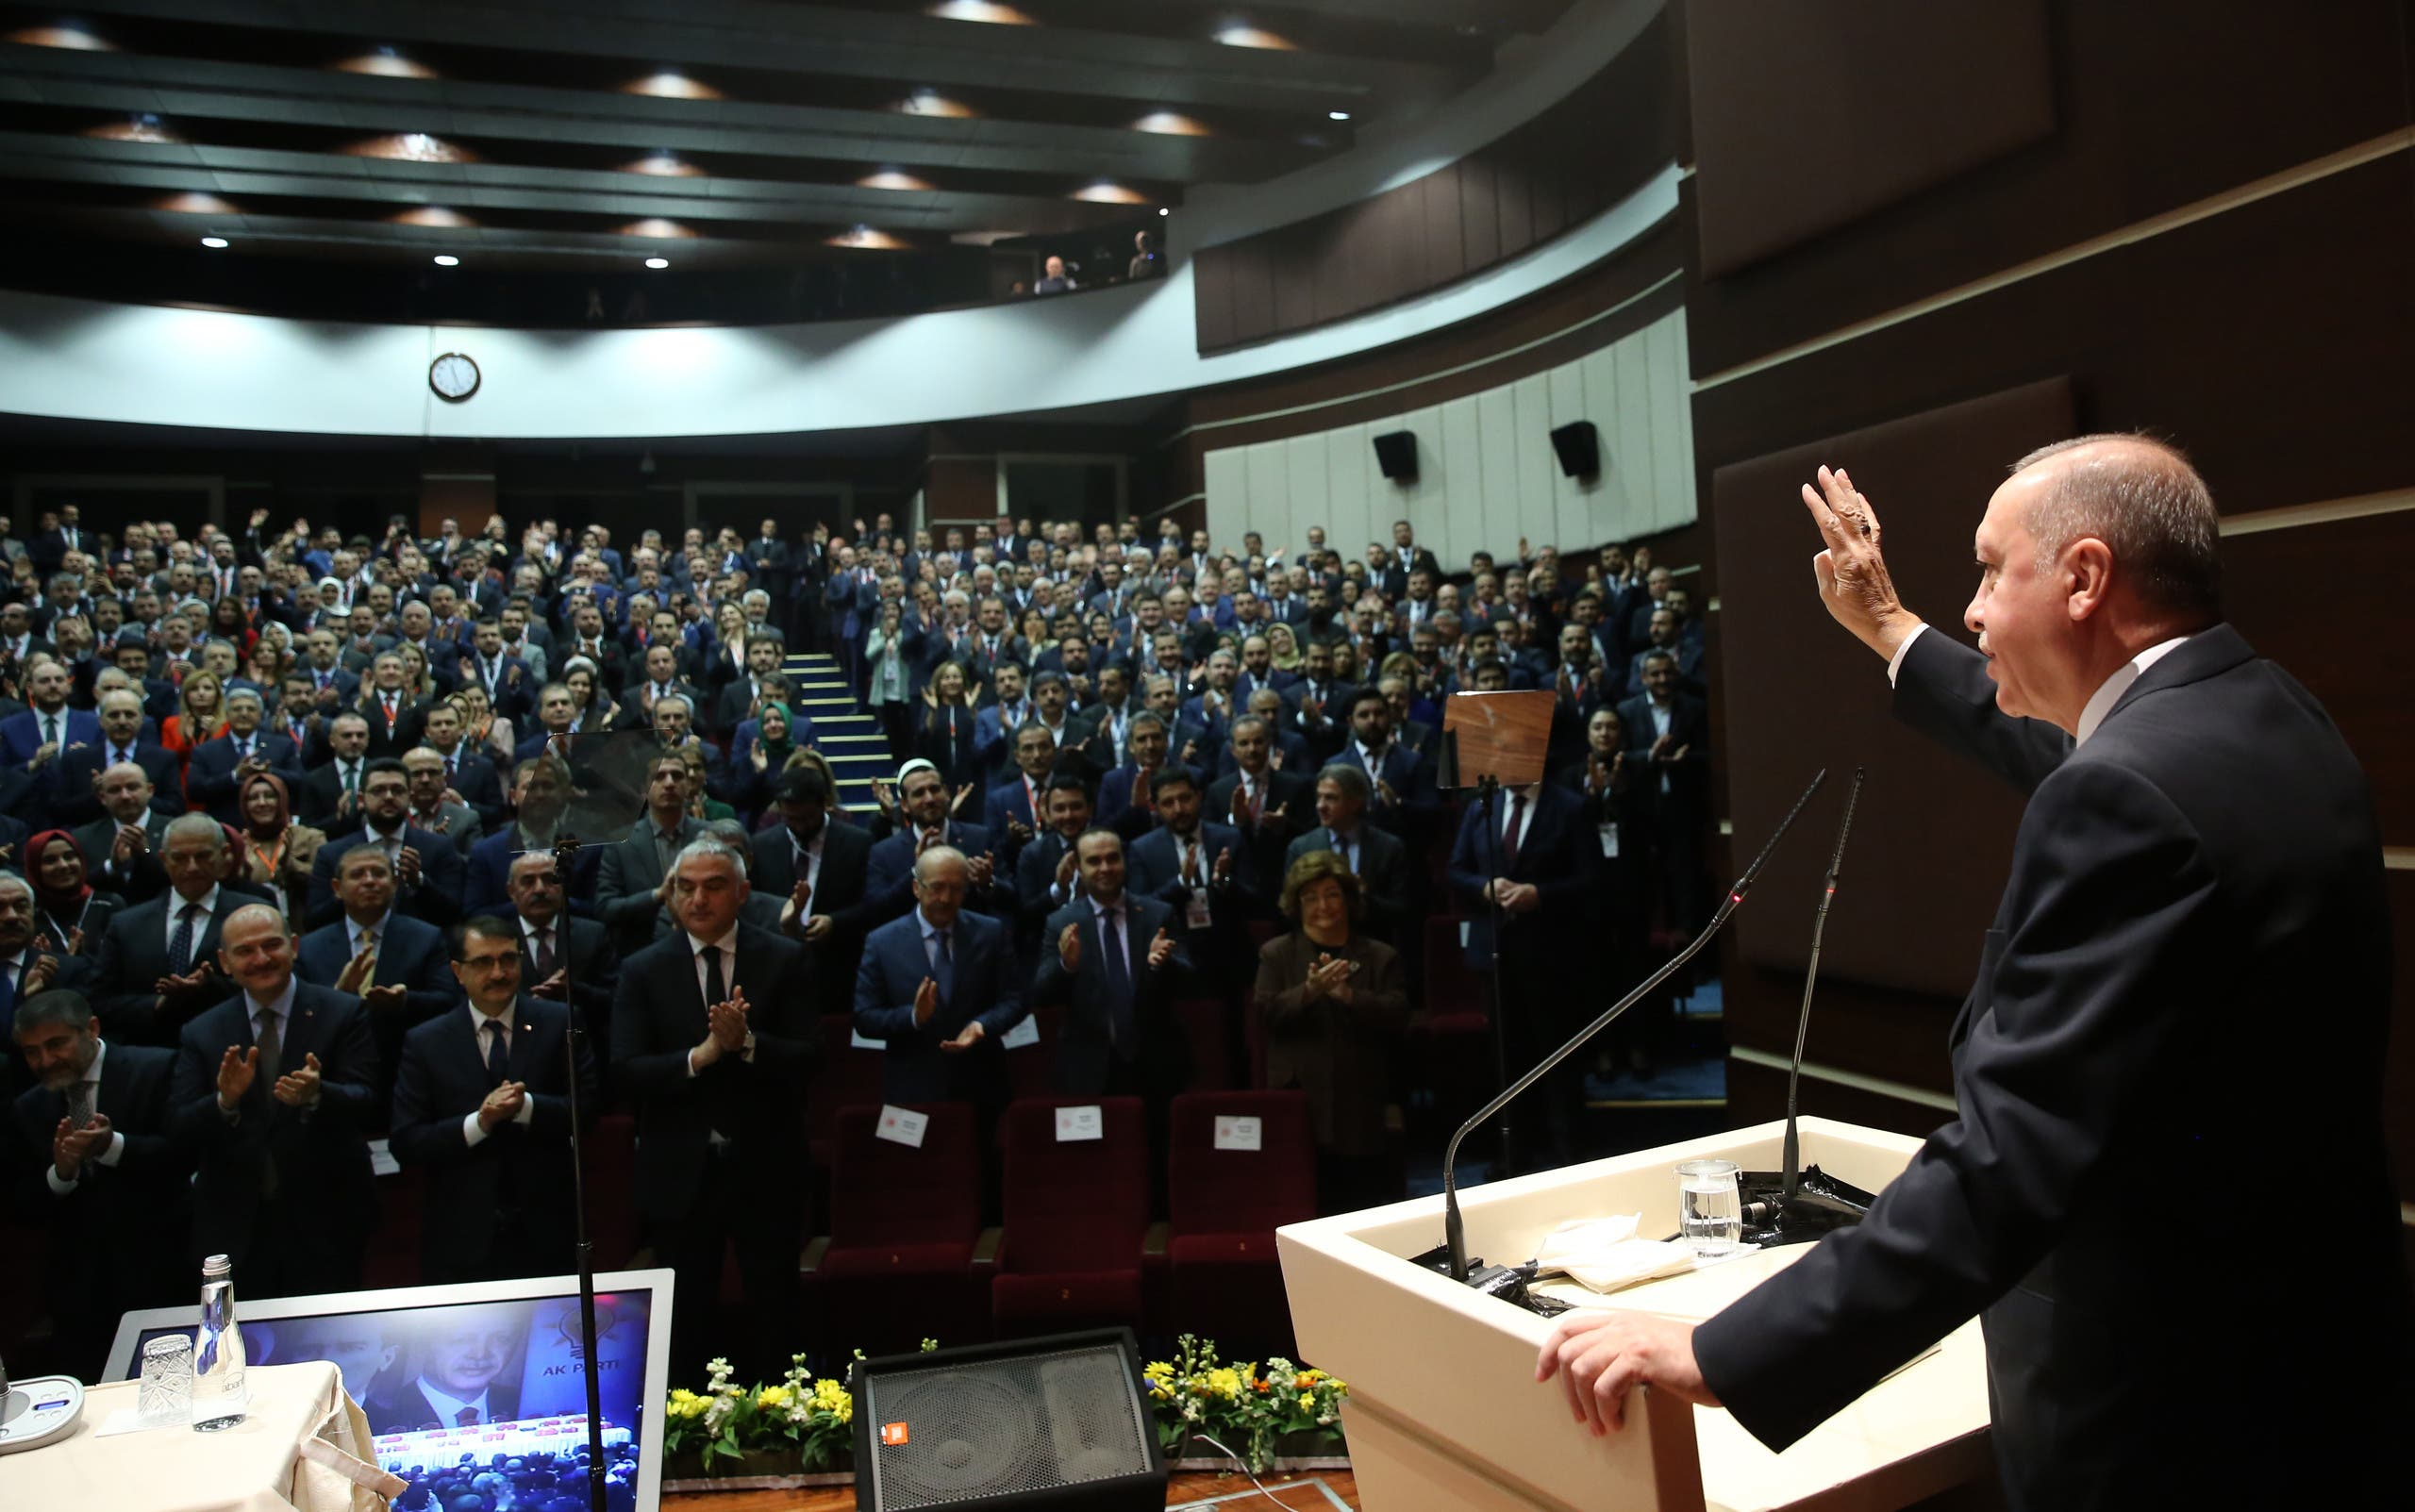 President Recep Tayyip Erdogan speaking to members of the ruling Justice and Development Party (AKP) in Ankara. (AFP)